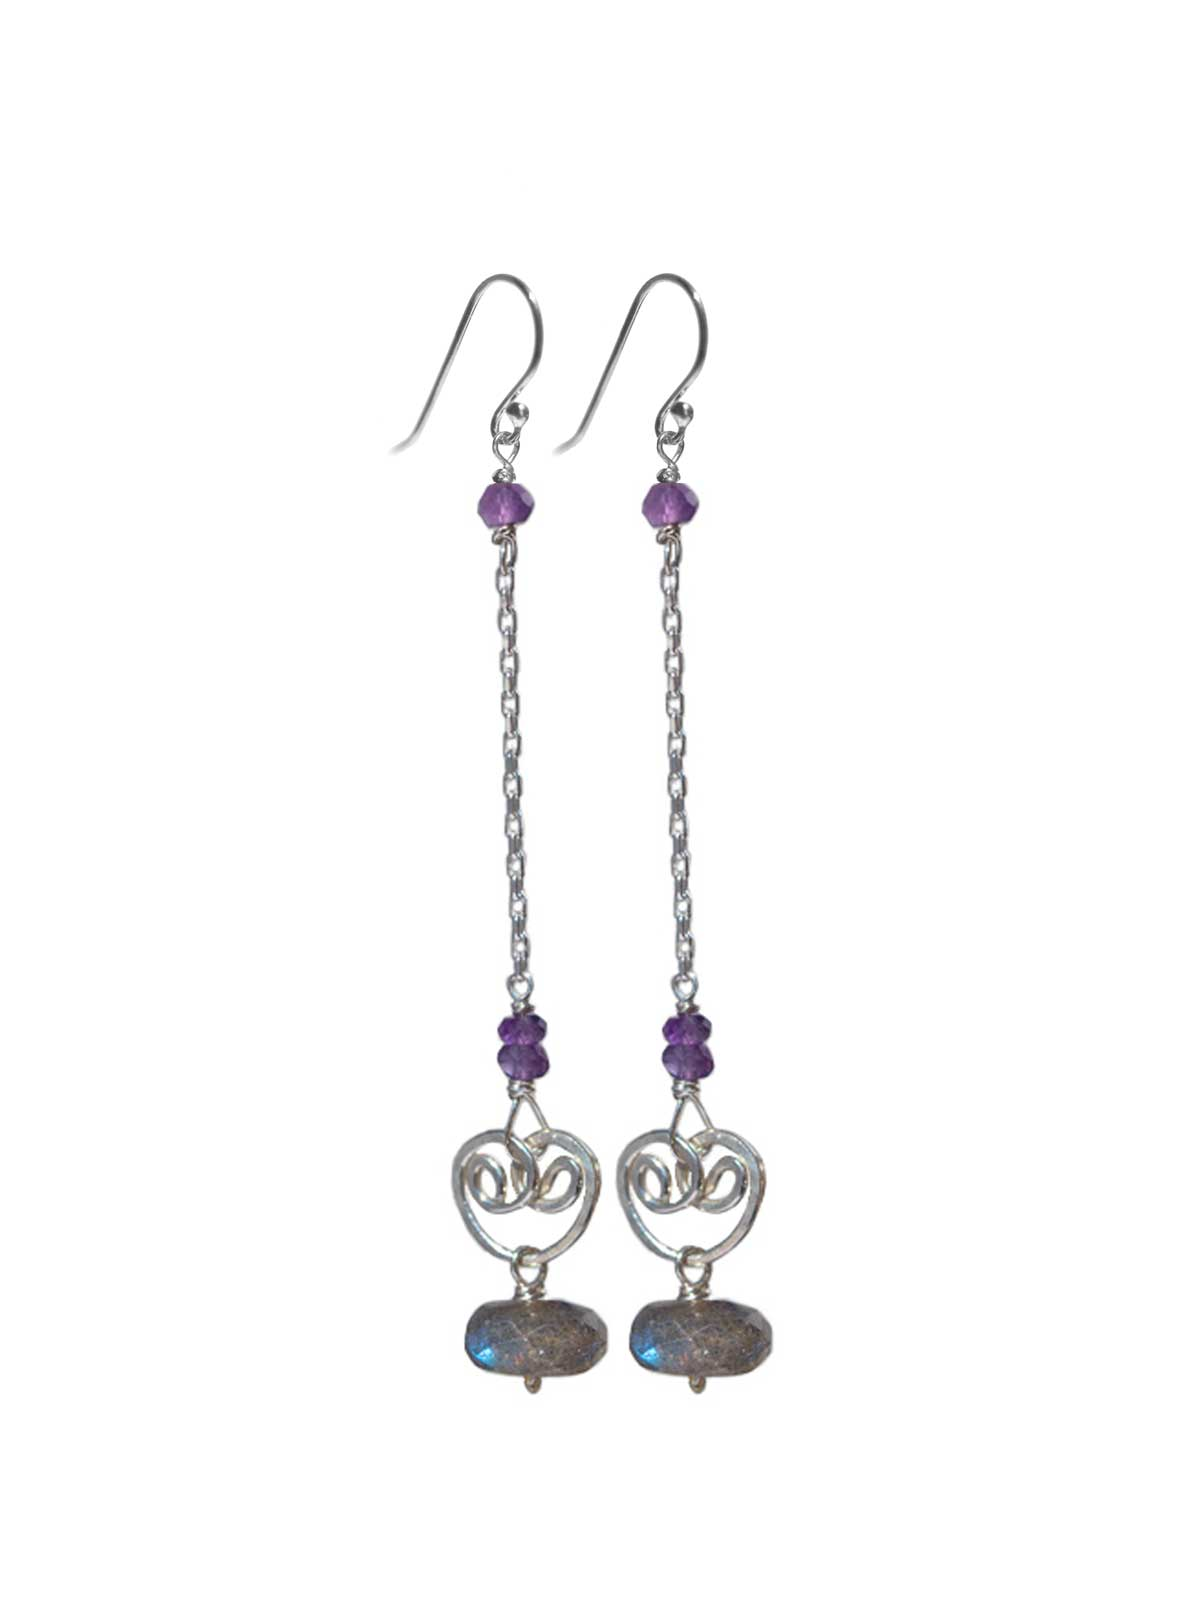 Earrings in Sterling Silver buddha Labradorite Amethyst